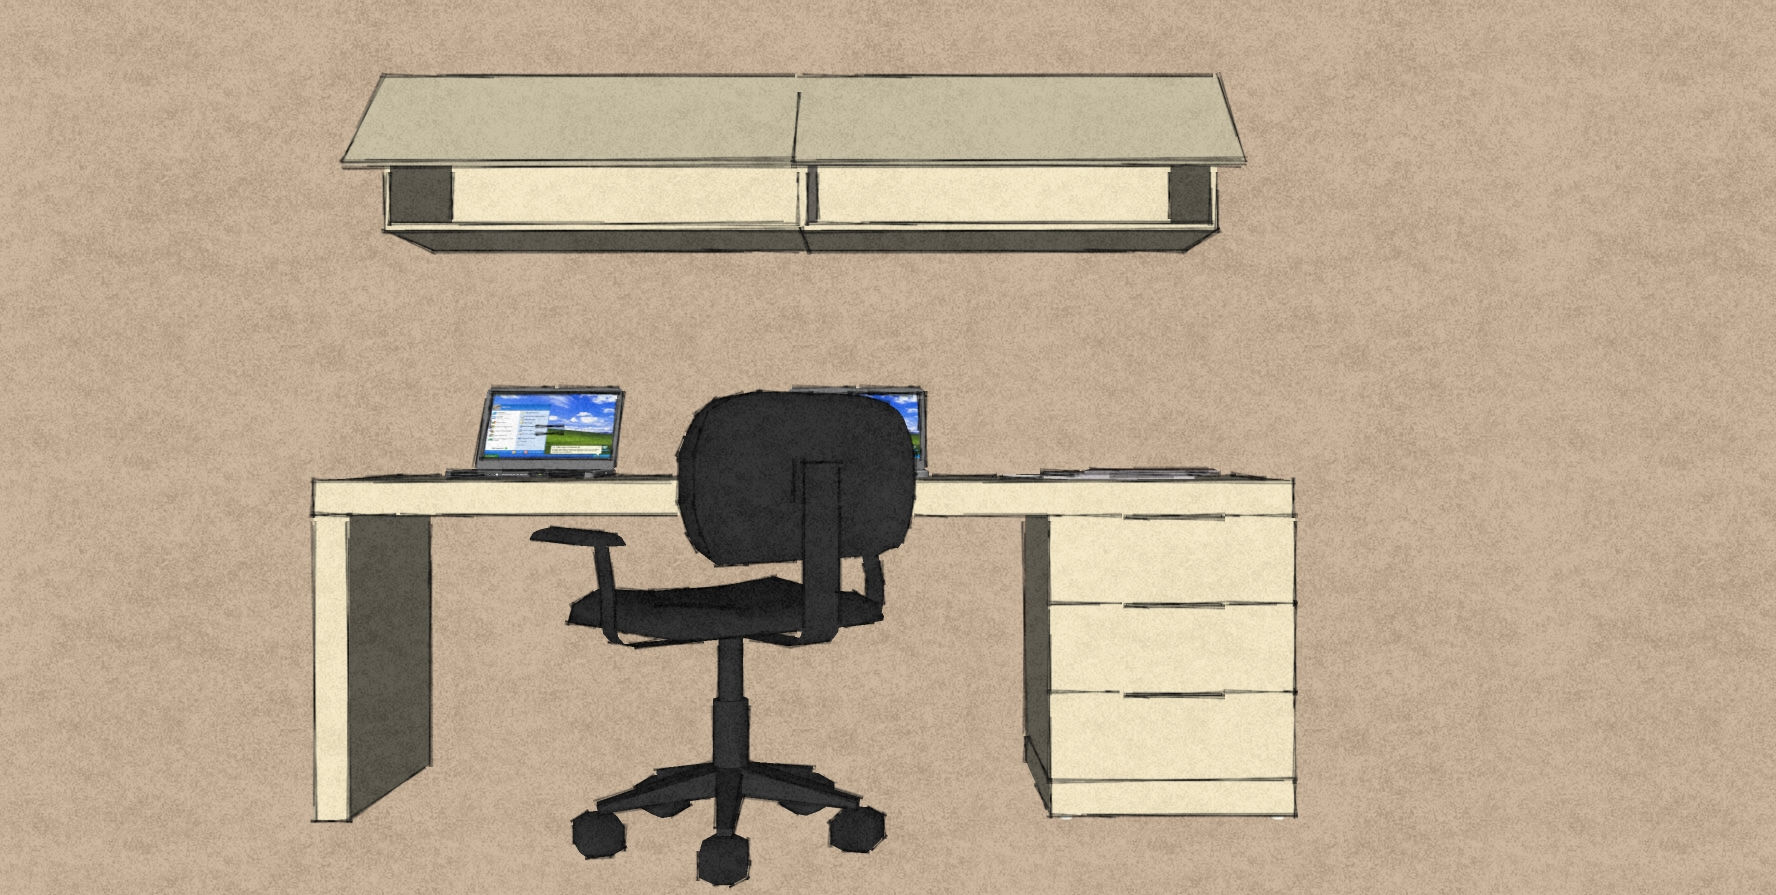 D10 office furniture design simple desk with wall hung lift lid cabinets all in pale cream matt lacquer.jpg